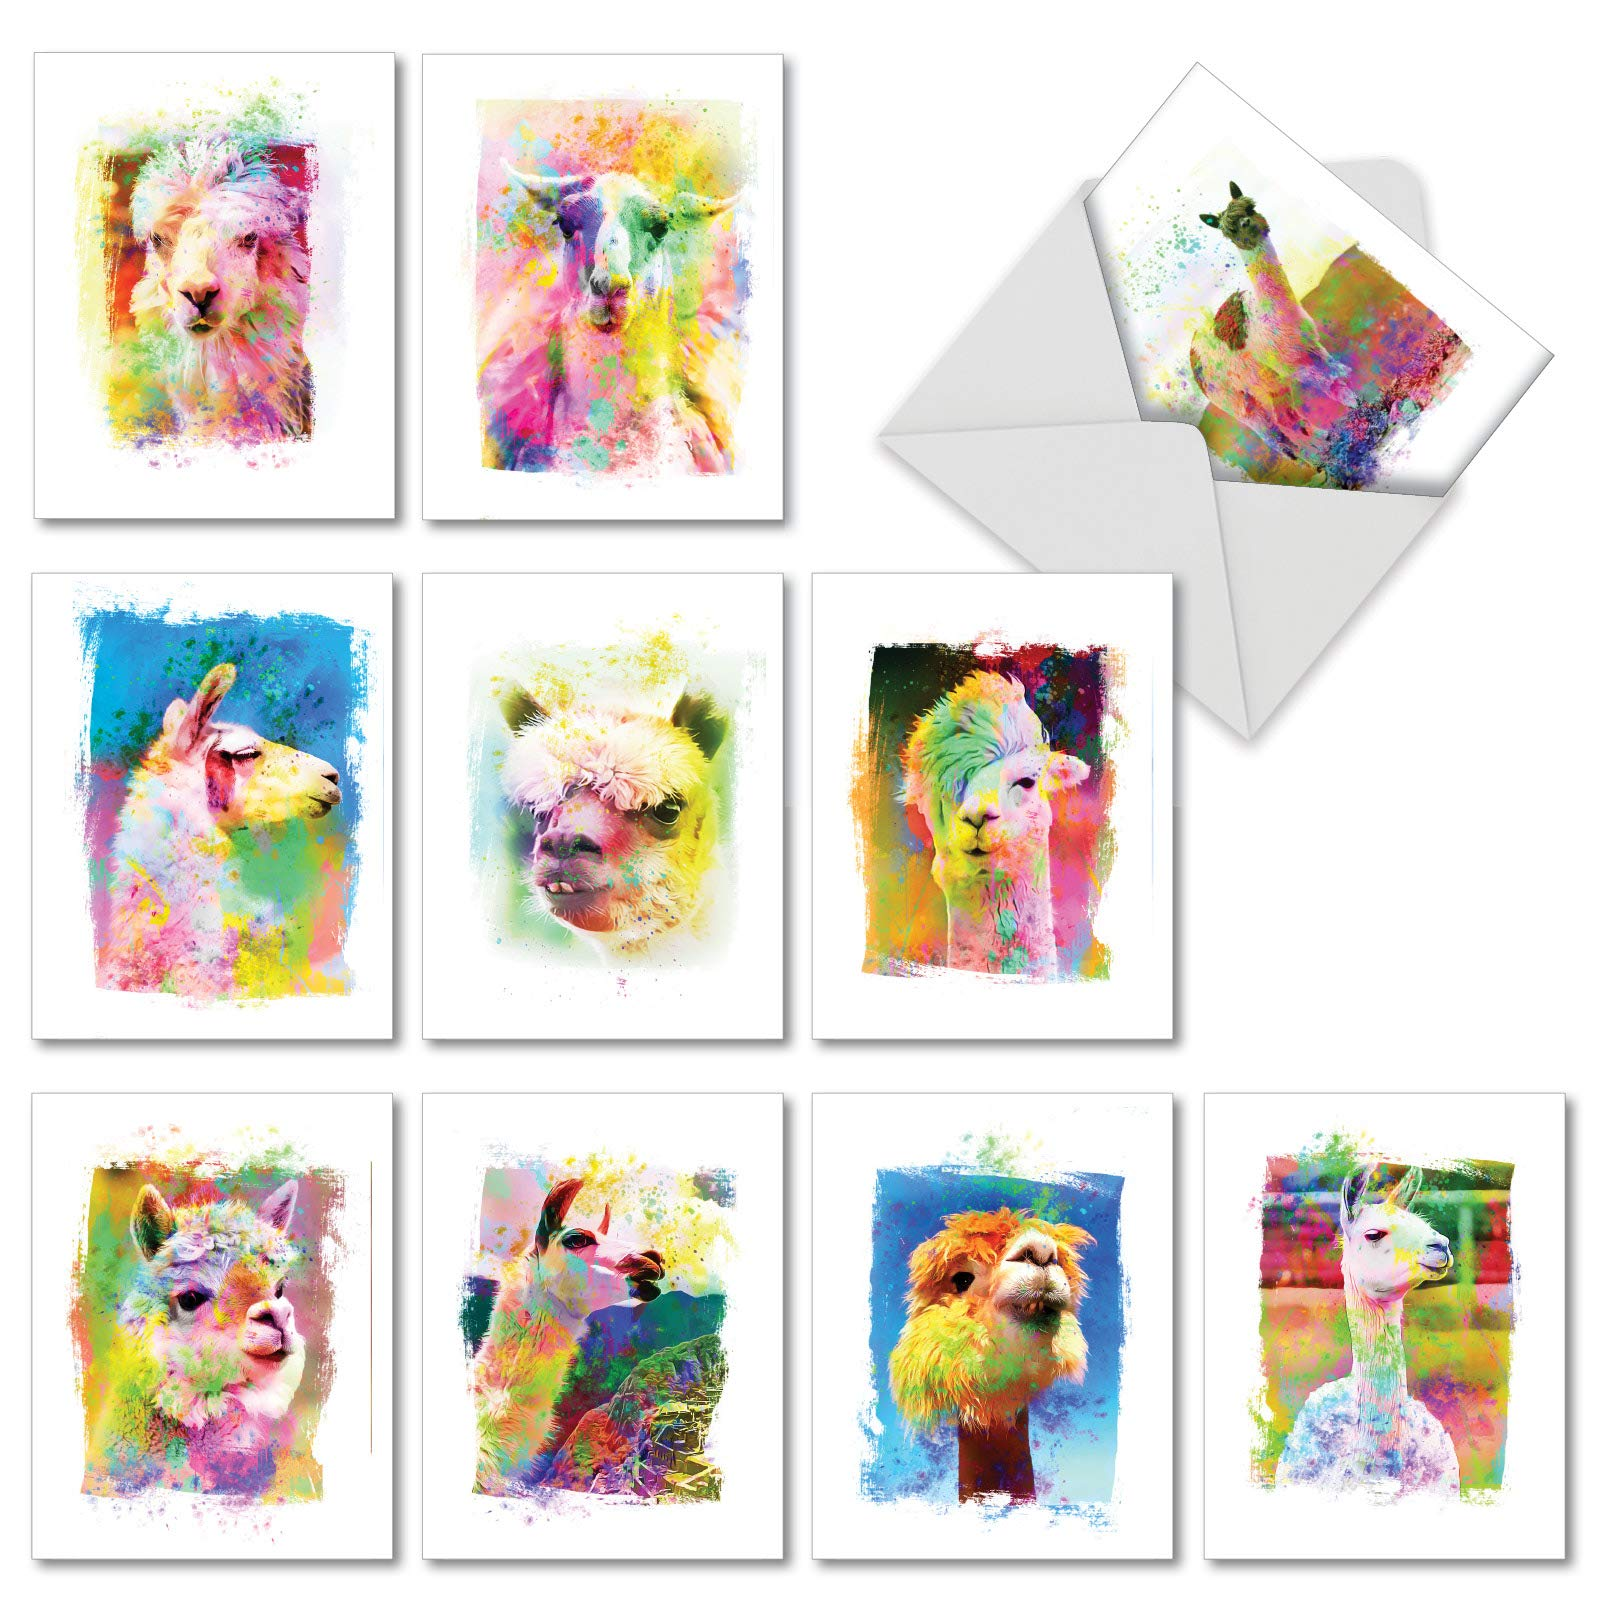 Funky Rainbow Llamas - 10 Watercolor Blank Note Cards with Envelopes (4 x 5.12 Inch) - Colorful Painted Farm Animal Greeting Cards for Kids - All Occasion, Assorted Boxed Notecards AM6862OCB-B1x10